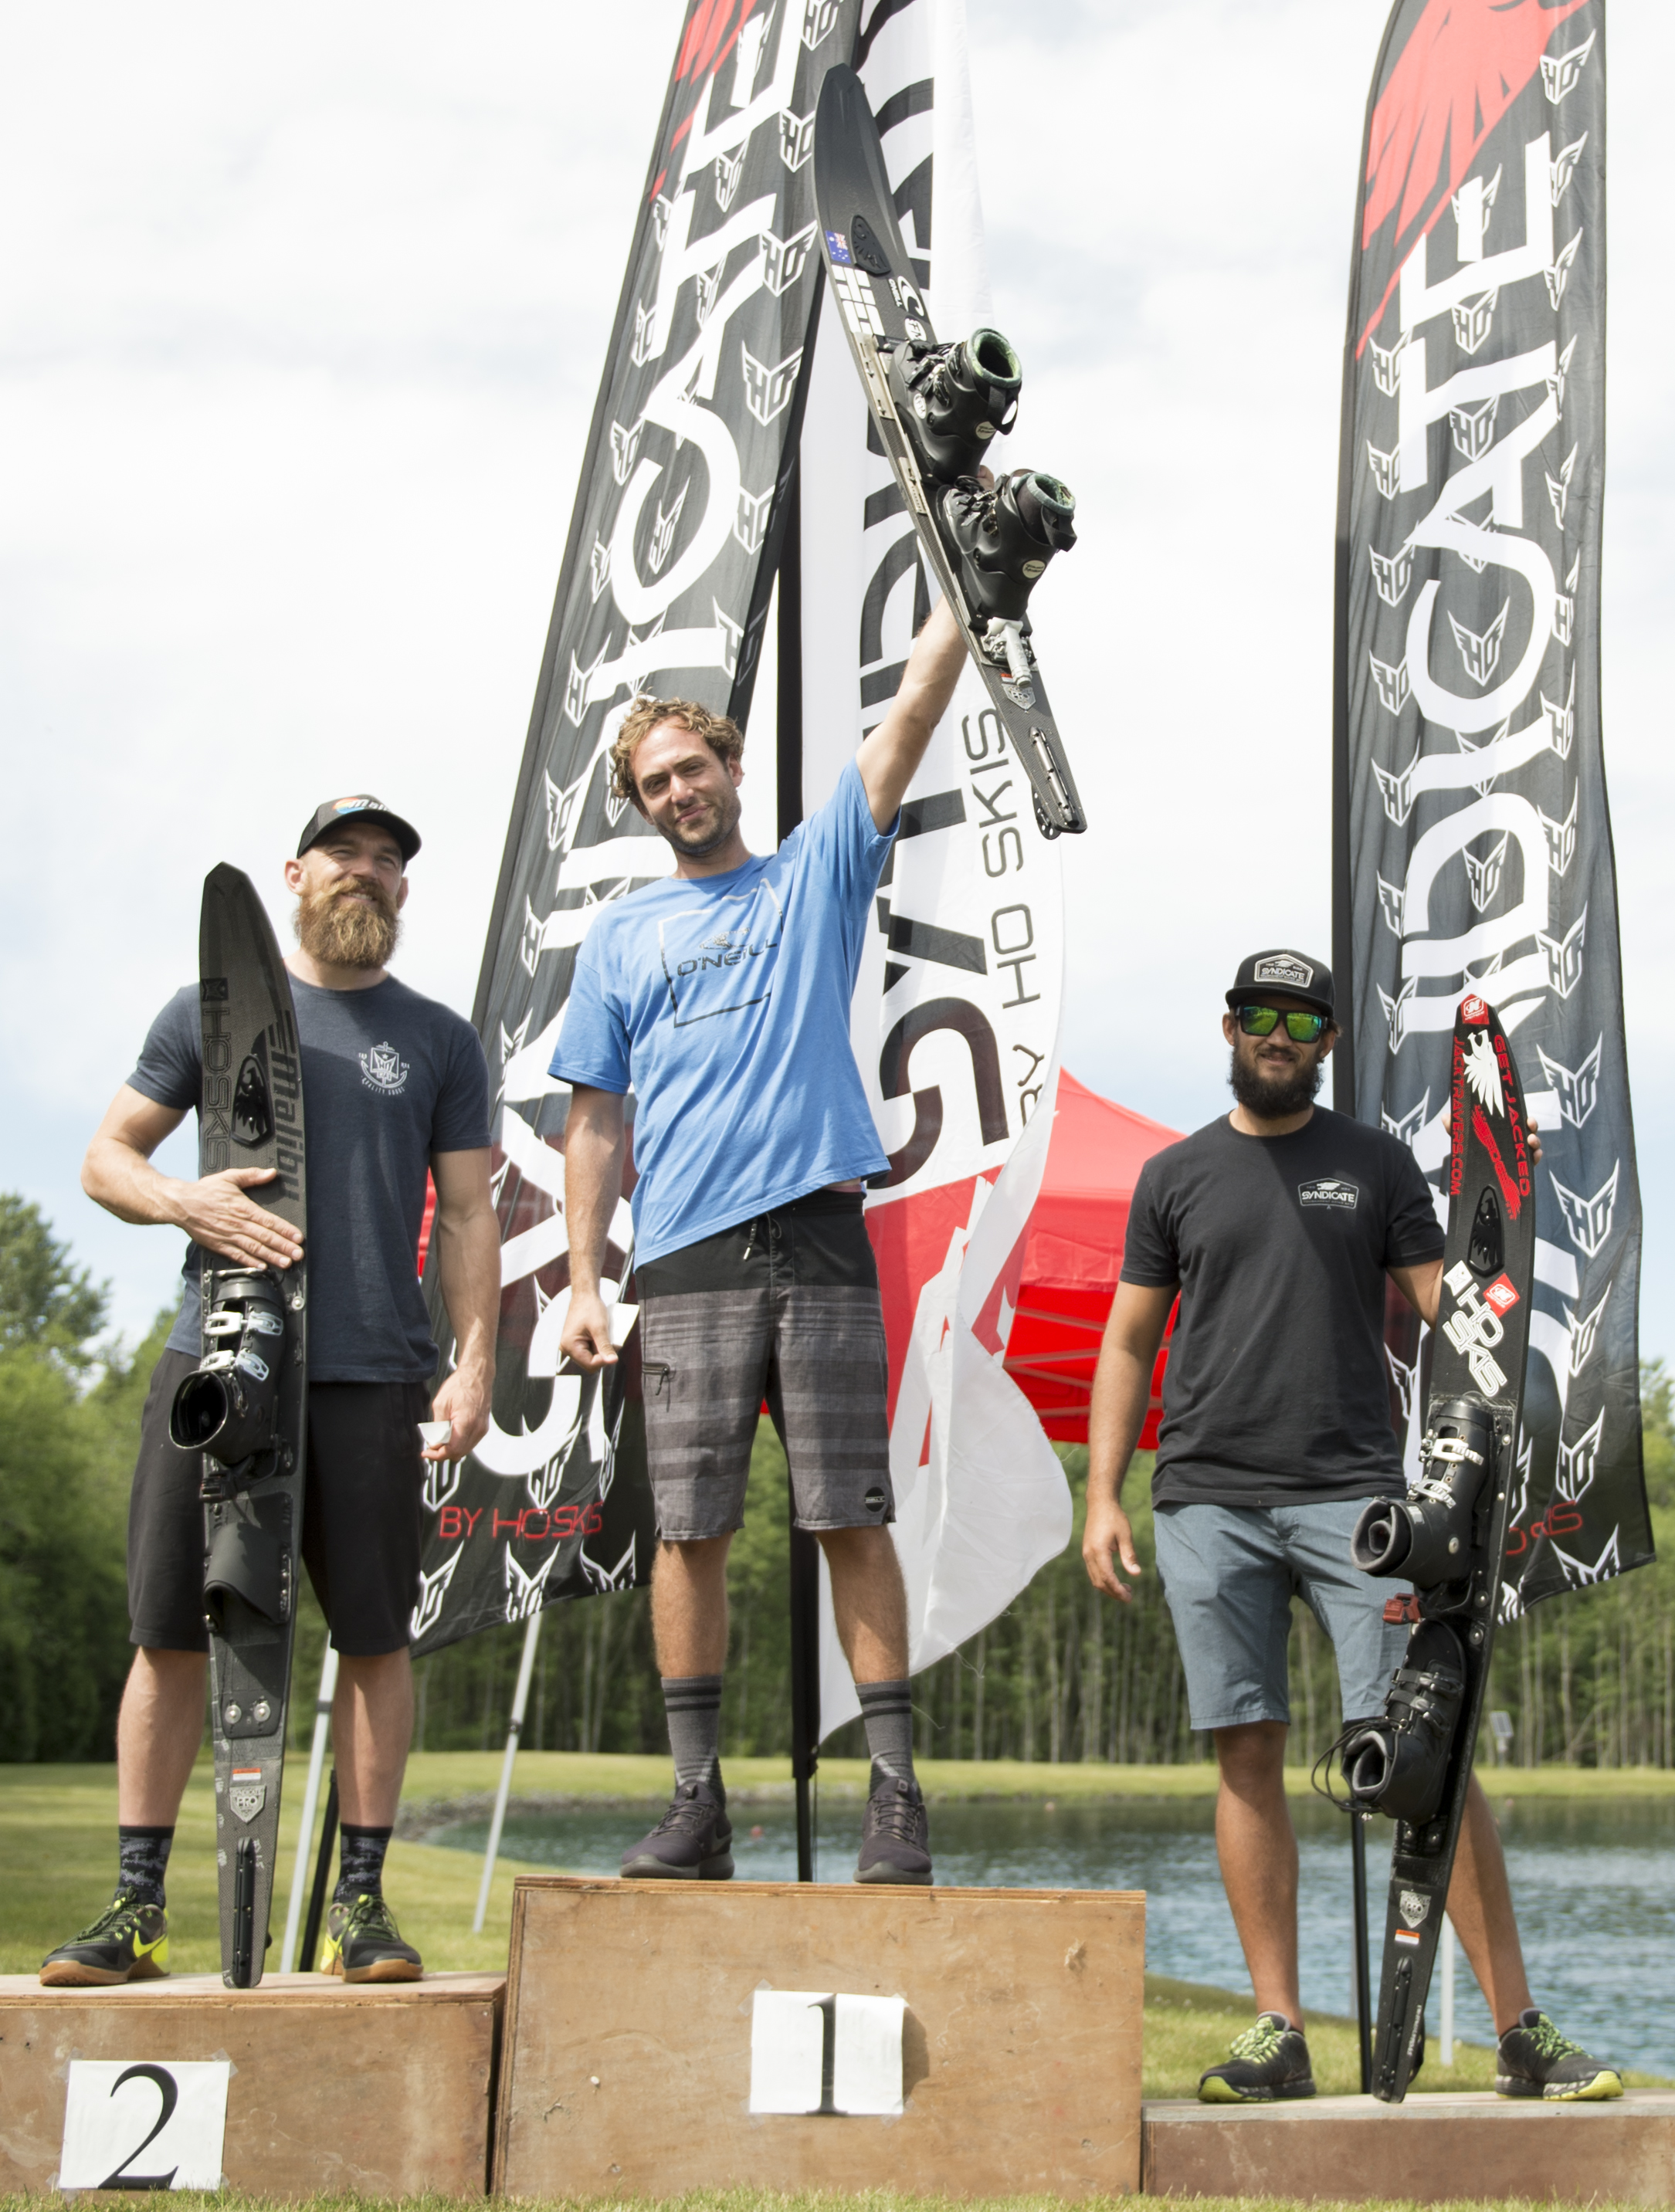 Nick Adams reigned supreme at the Syndicate Hilltop Pro-Am, taking home 4k and besting team-mates Will Asher(2nd) and Jon Travers(3rd)